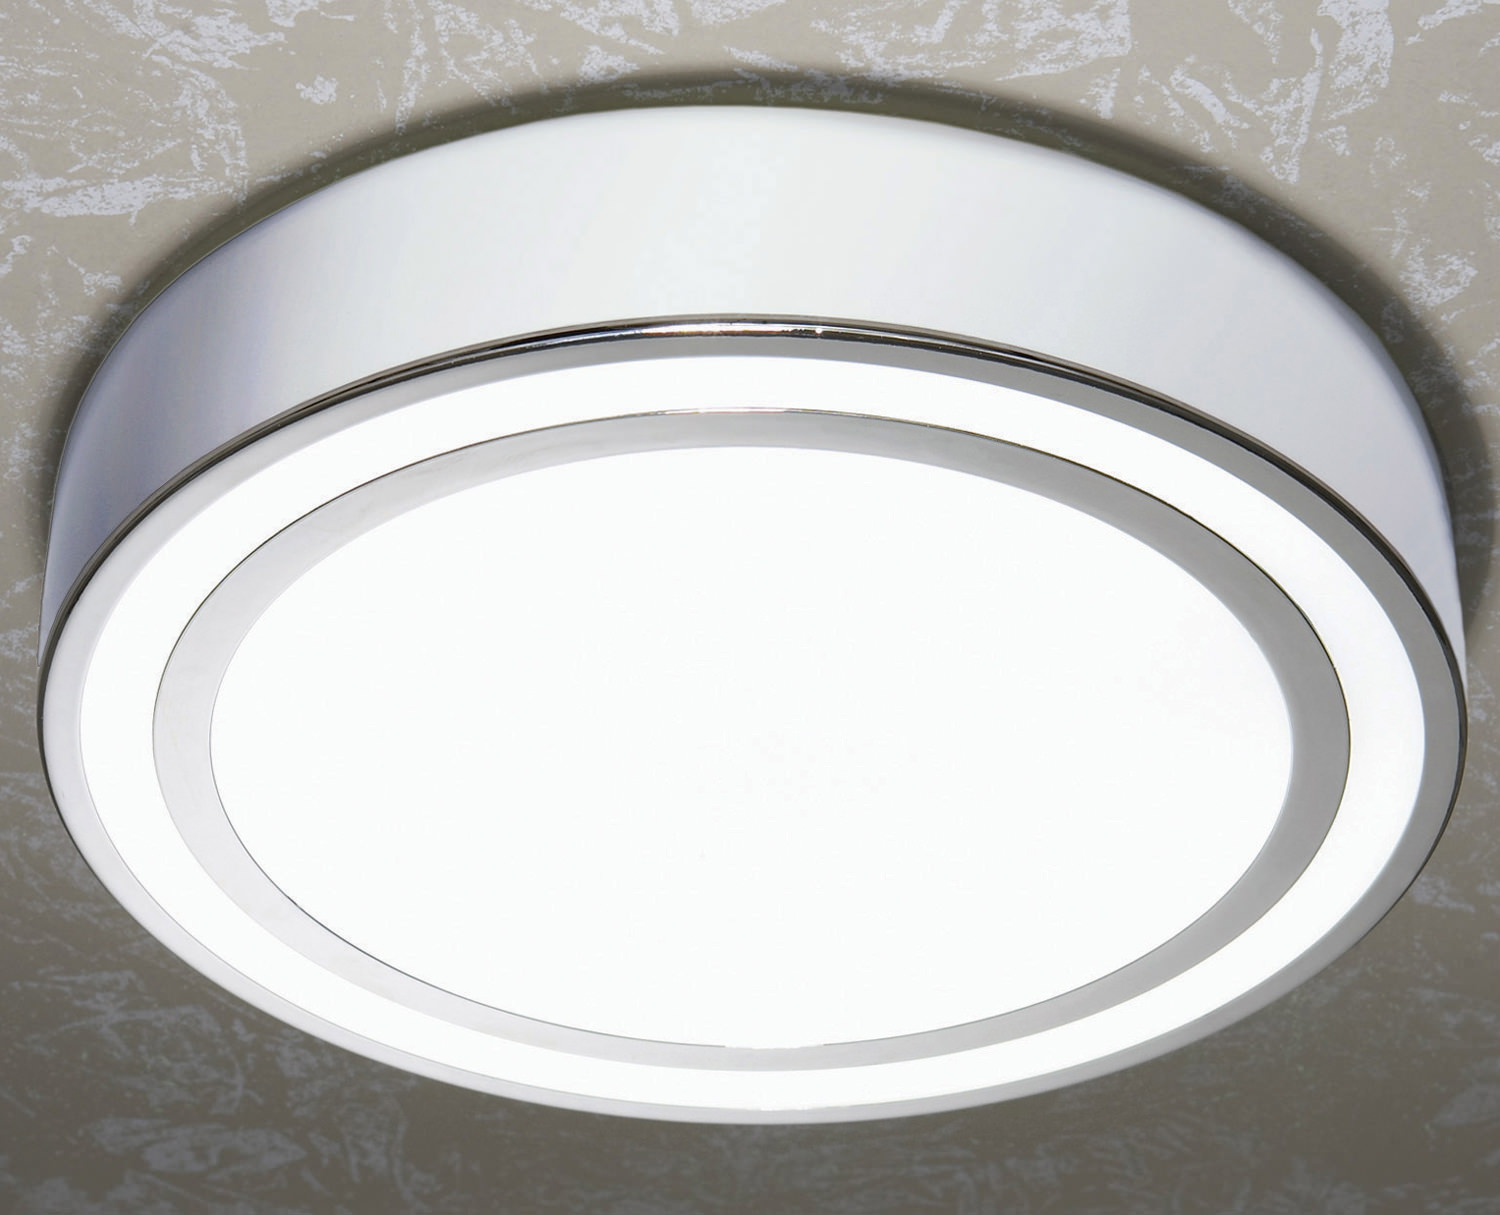 Hib spice circular ceiling light mozeypictures Image collections